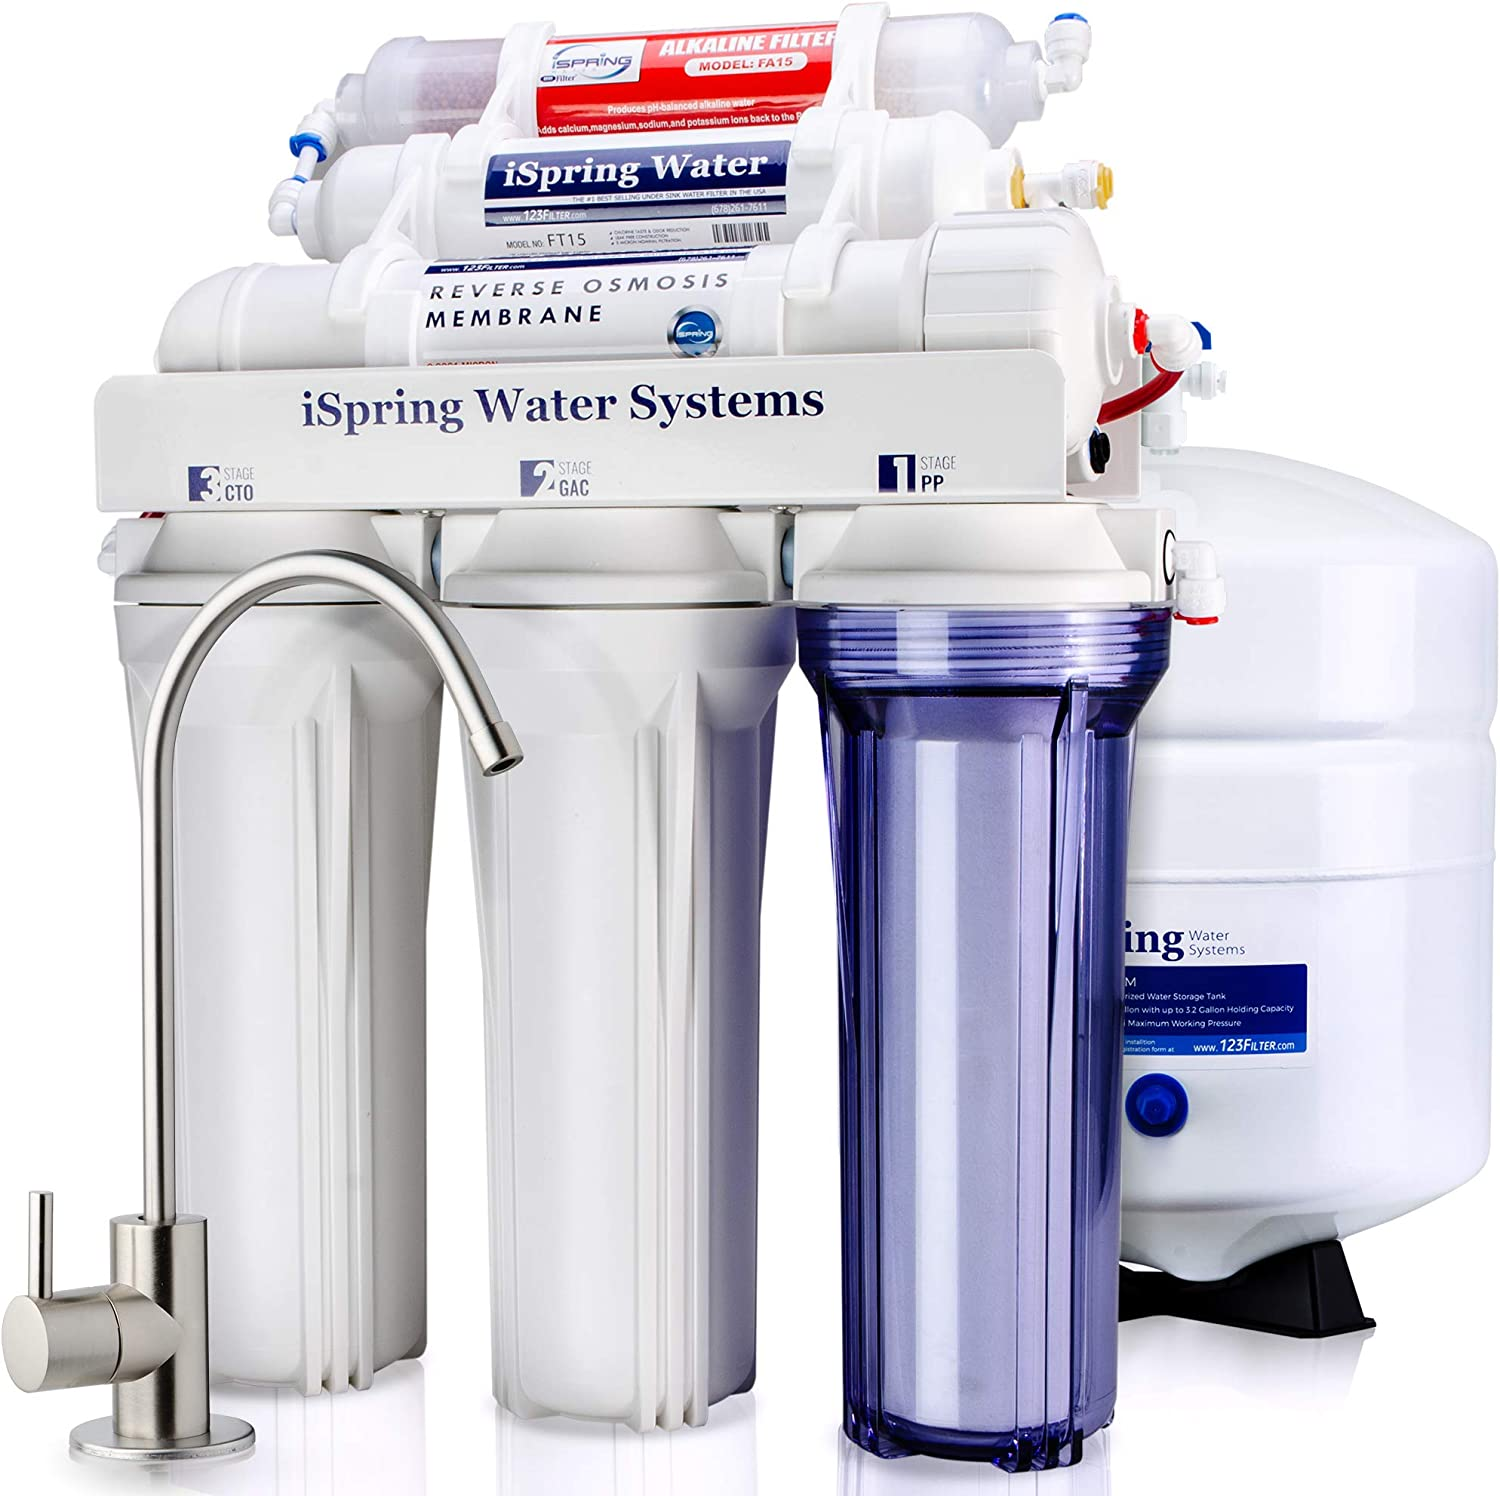 iSpring High Capacity Under Sink Reverse Osmosis Drinking Water Filter System Image